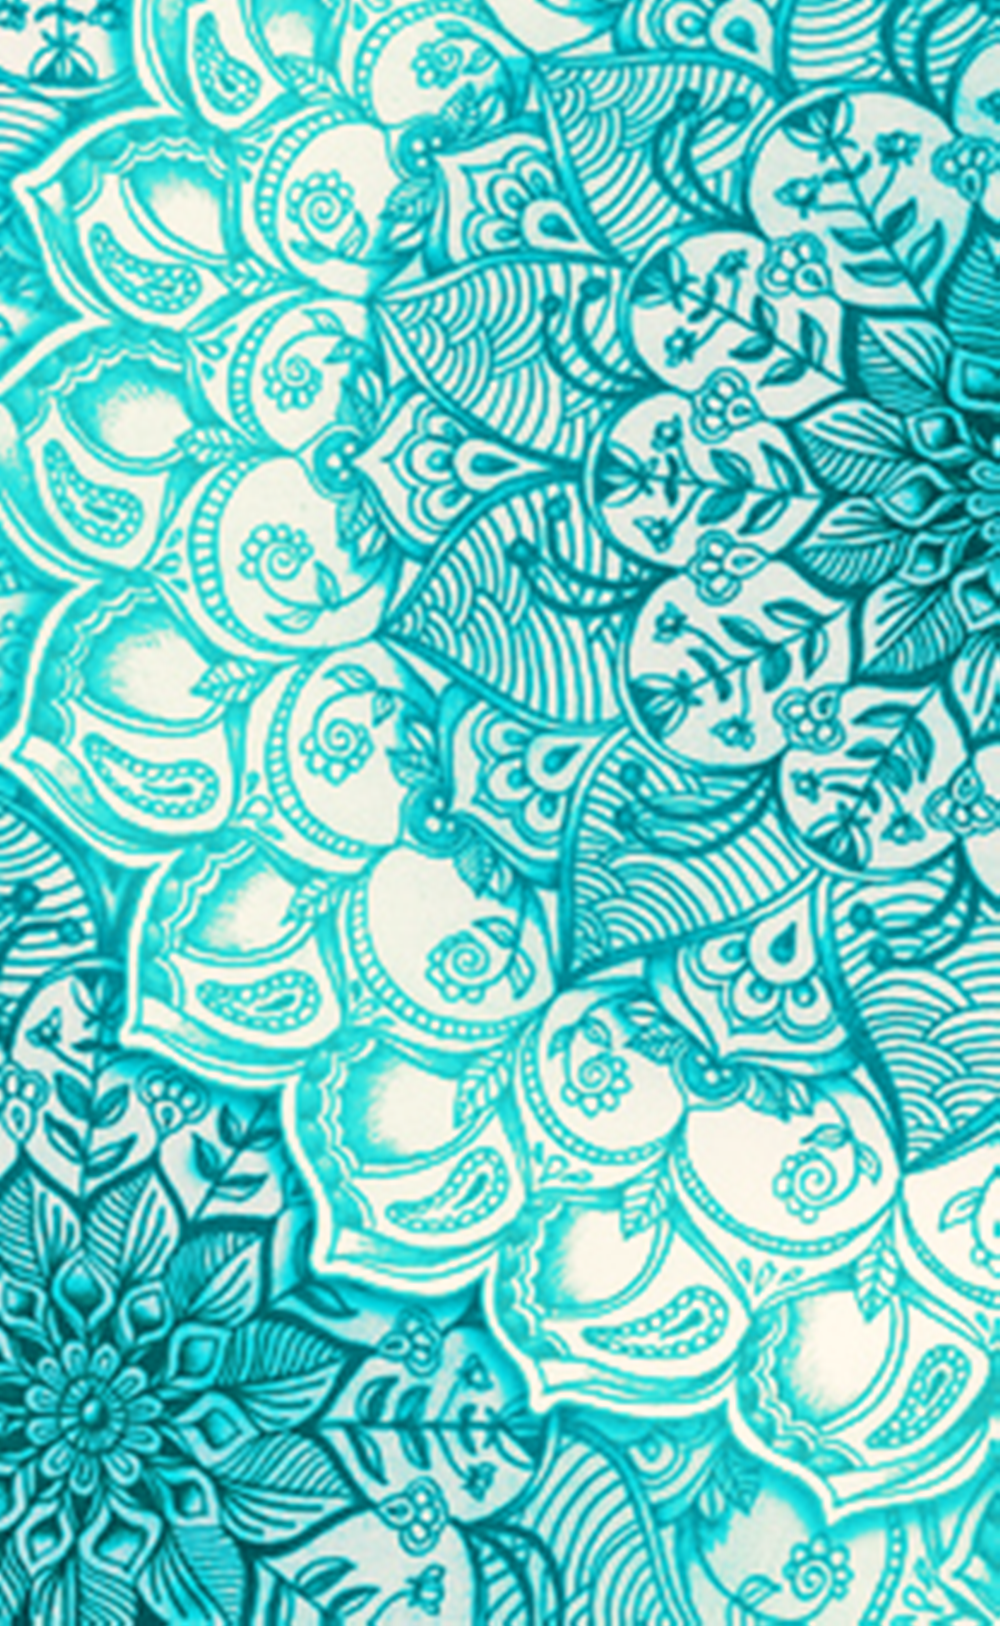 Wallpaper iphone mandala - Teal Turquoise Mandala Pattern Wallpaper Wallpapers From Celular Buscar Con